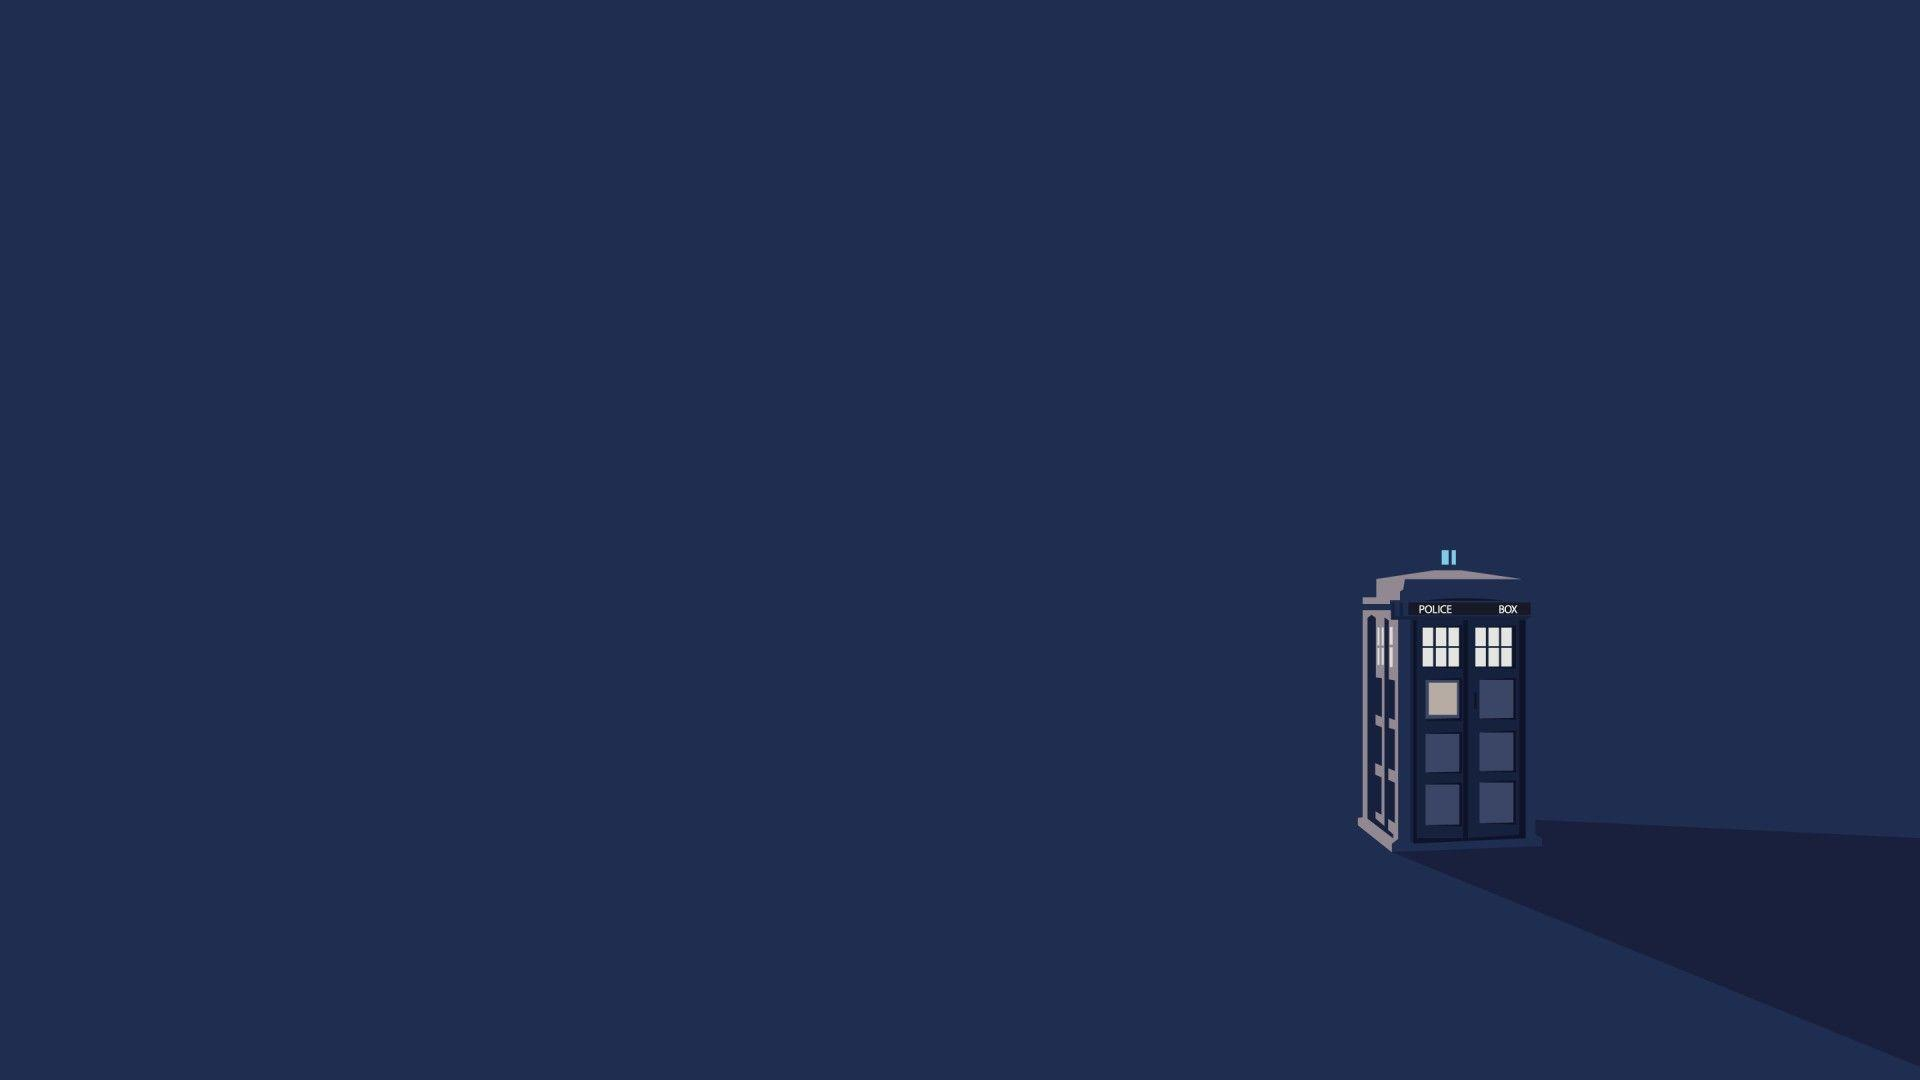 tardis images hd wallpaper - photo #2